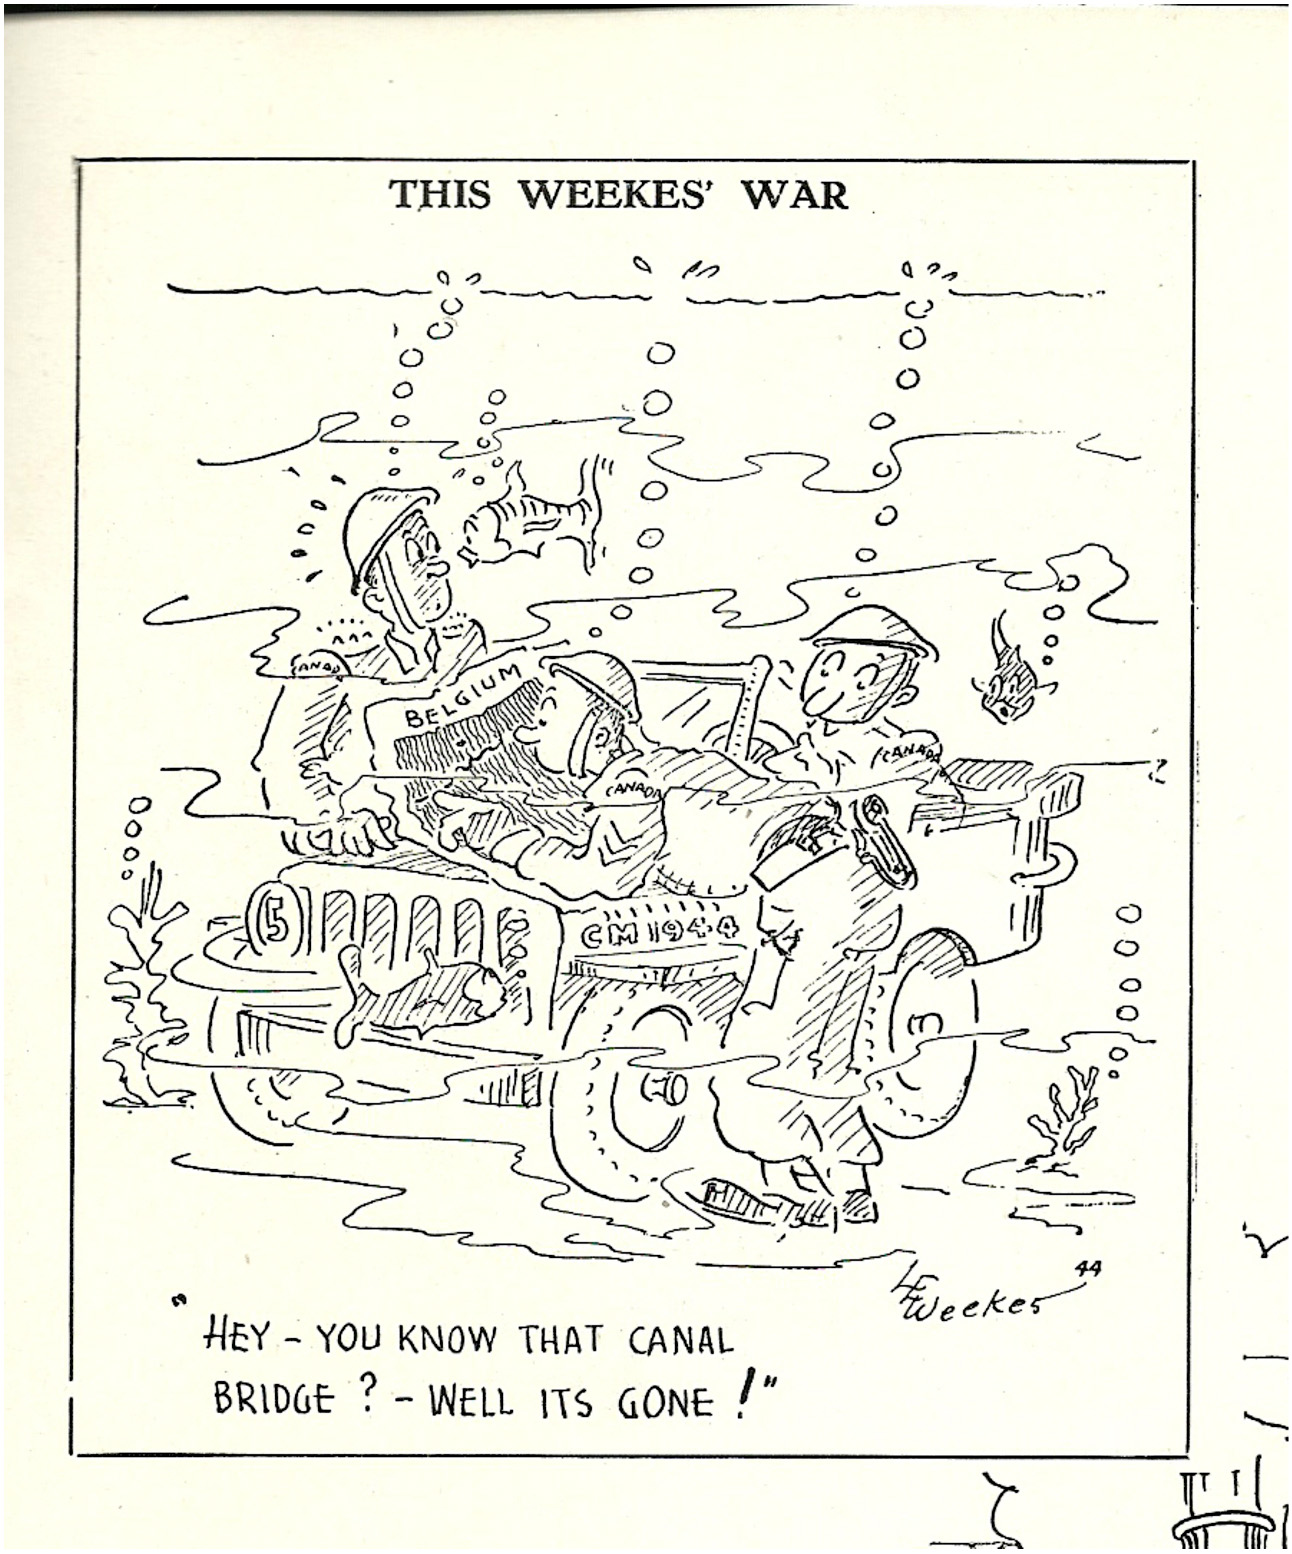 """:Les Weekes was another cartoonist who drew for the Maple Leaf, with the title of This Weekes' War. One of his notable cartoons, republished in Maple Leaf Scrapbook, was one in which a recce jeep had crashed into the water, and upon inspecting the map (underwater) the officer noted, """"Hey, you know that canal bridge? Well it's gone!"""""""